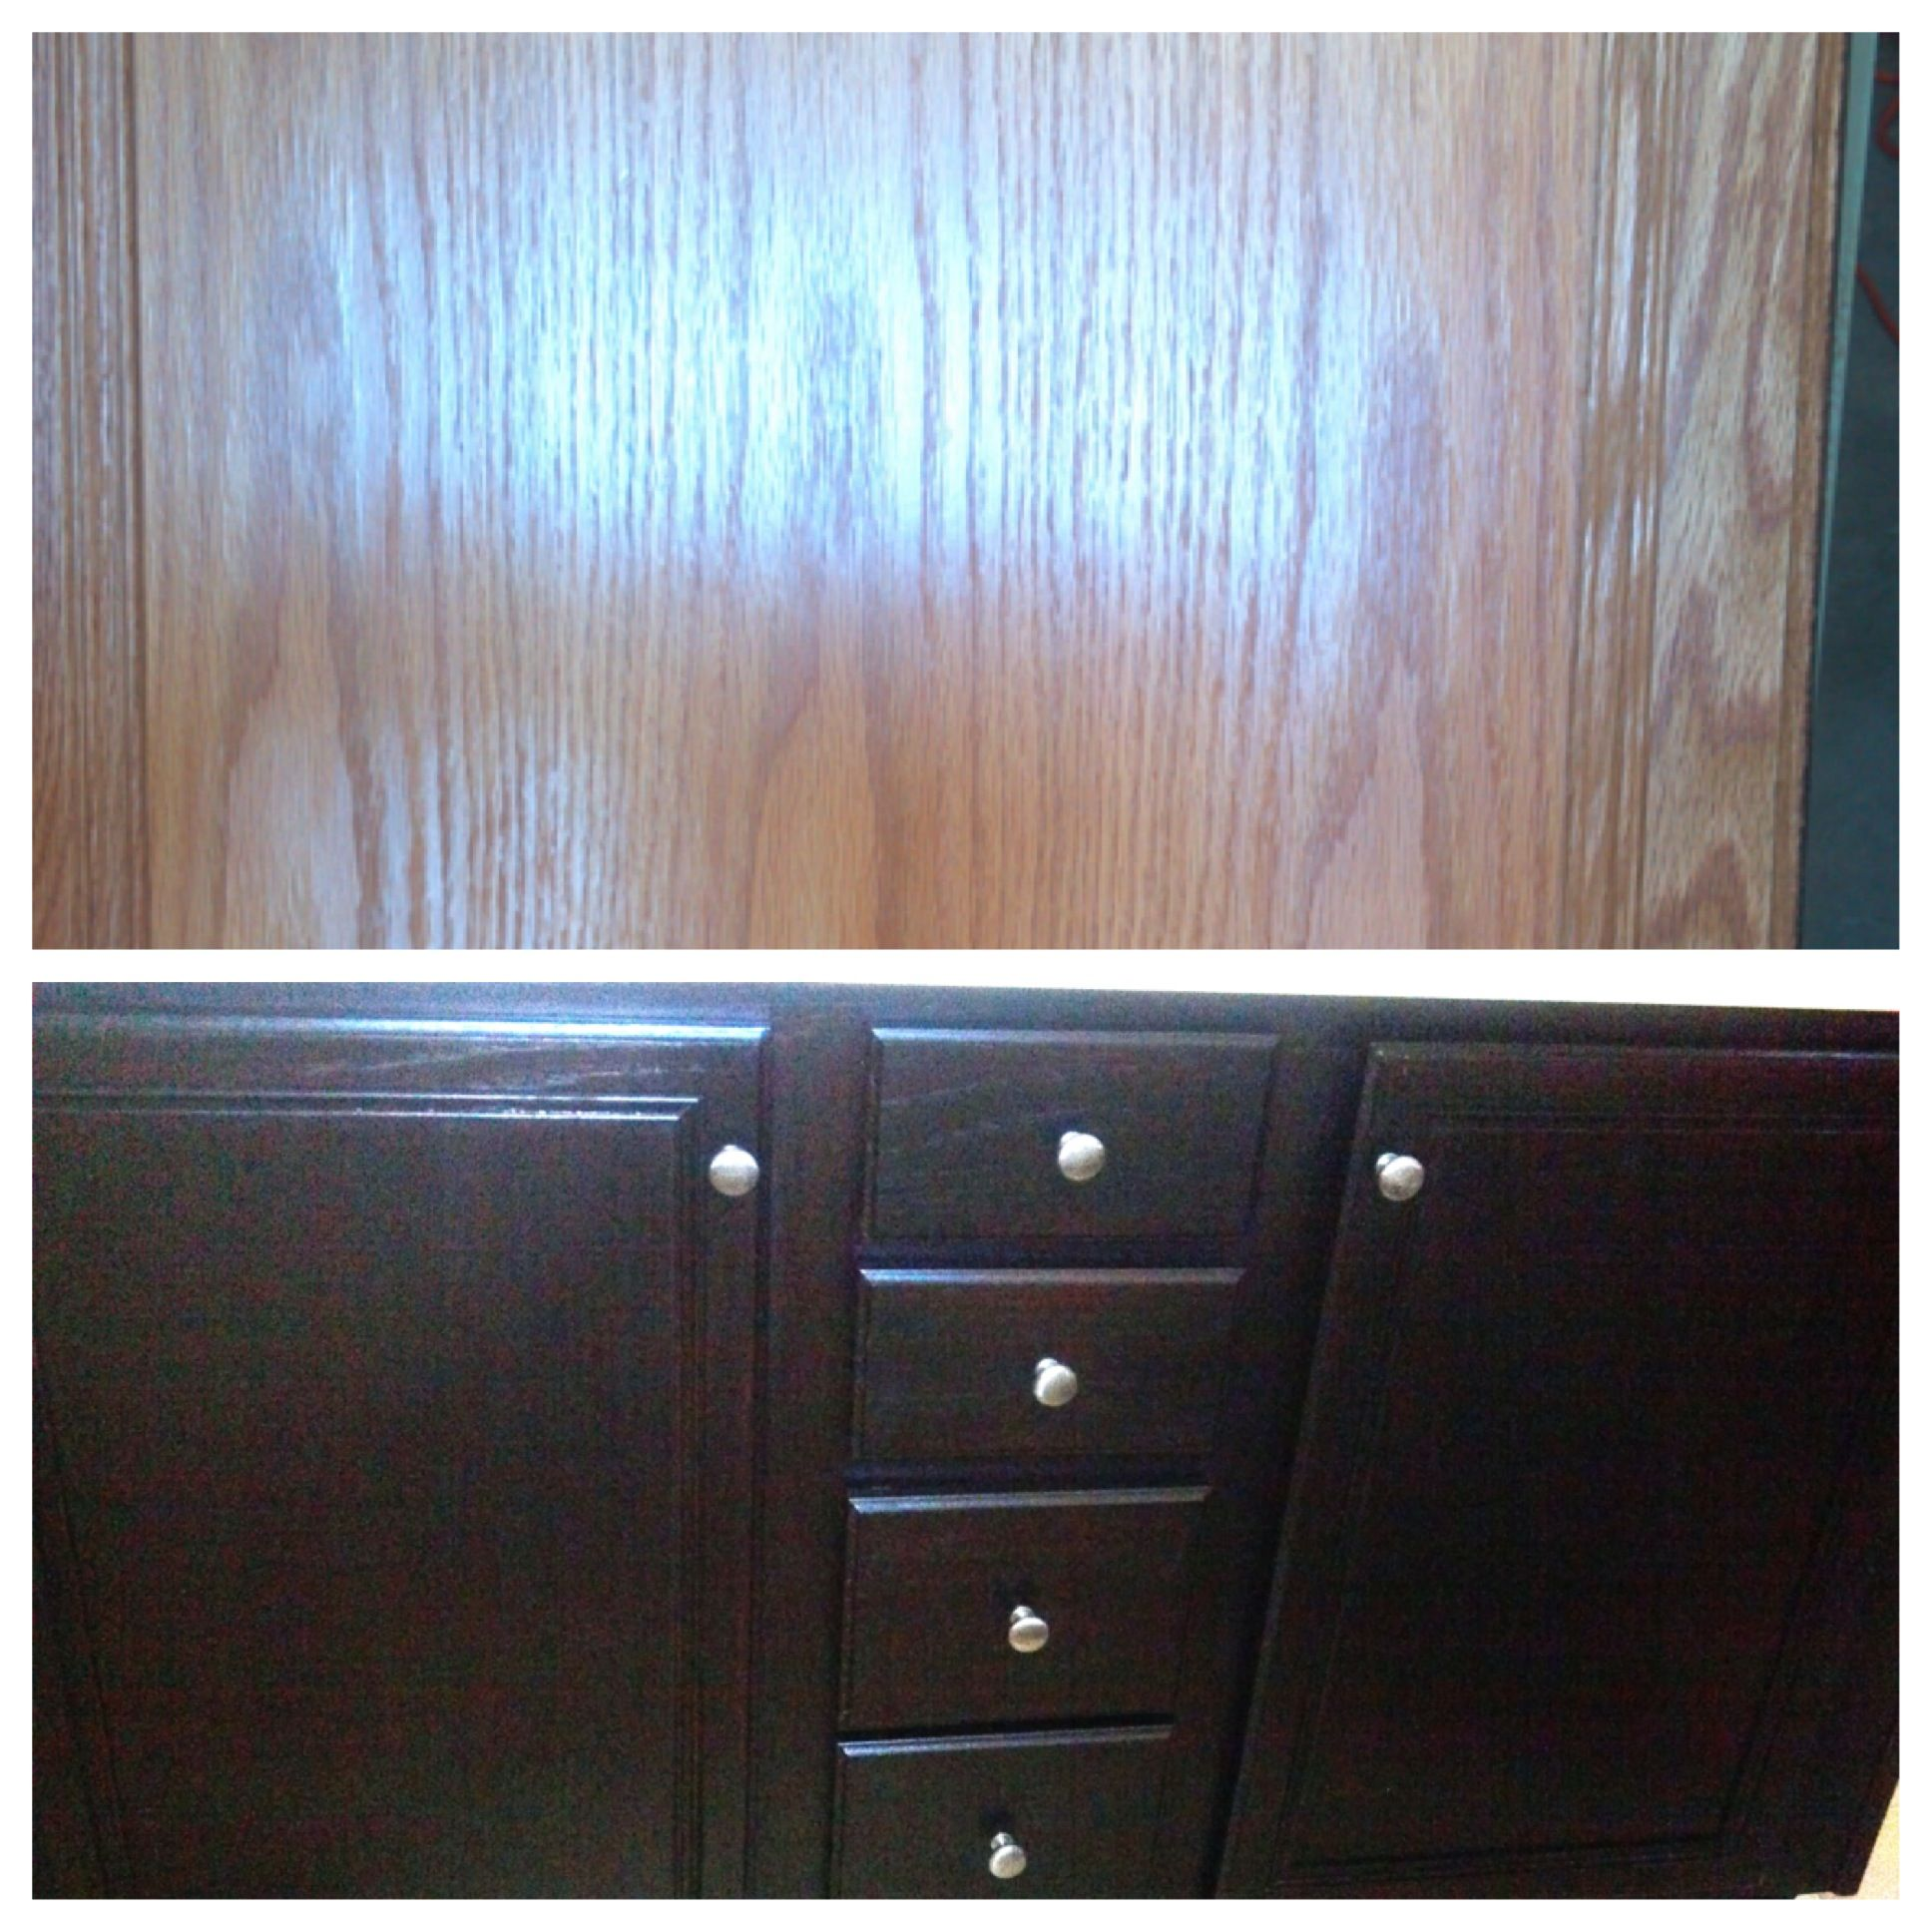 White Shaker Doors For Kitchen Cabinets With Oak Trim Ebony Stain To Plain Oak Cabinets Really Update This